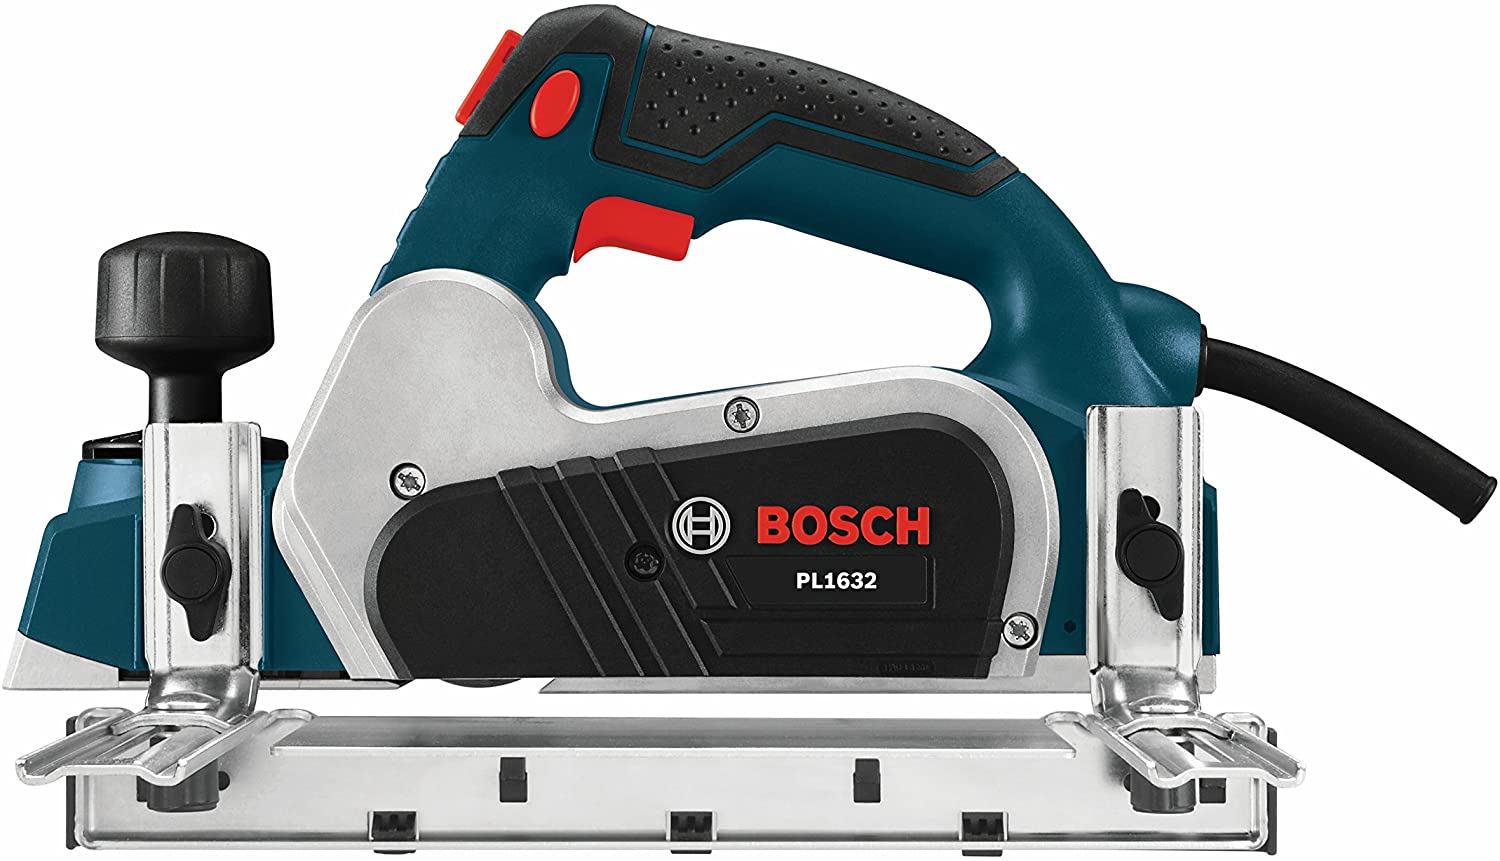 Bosch PL1632 featured image 2